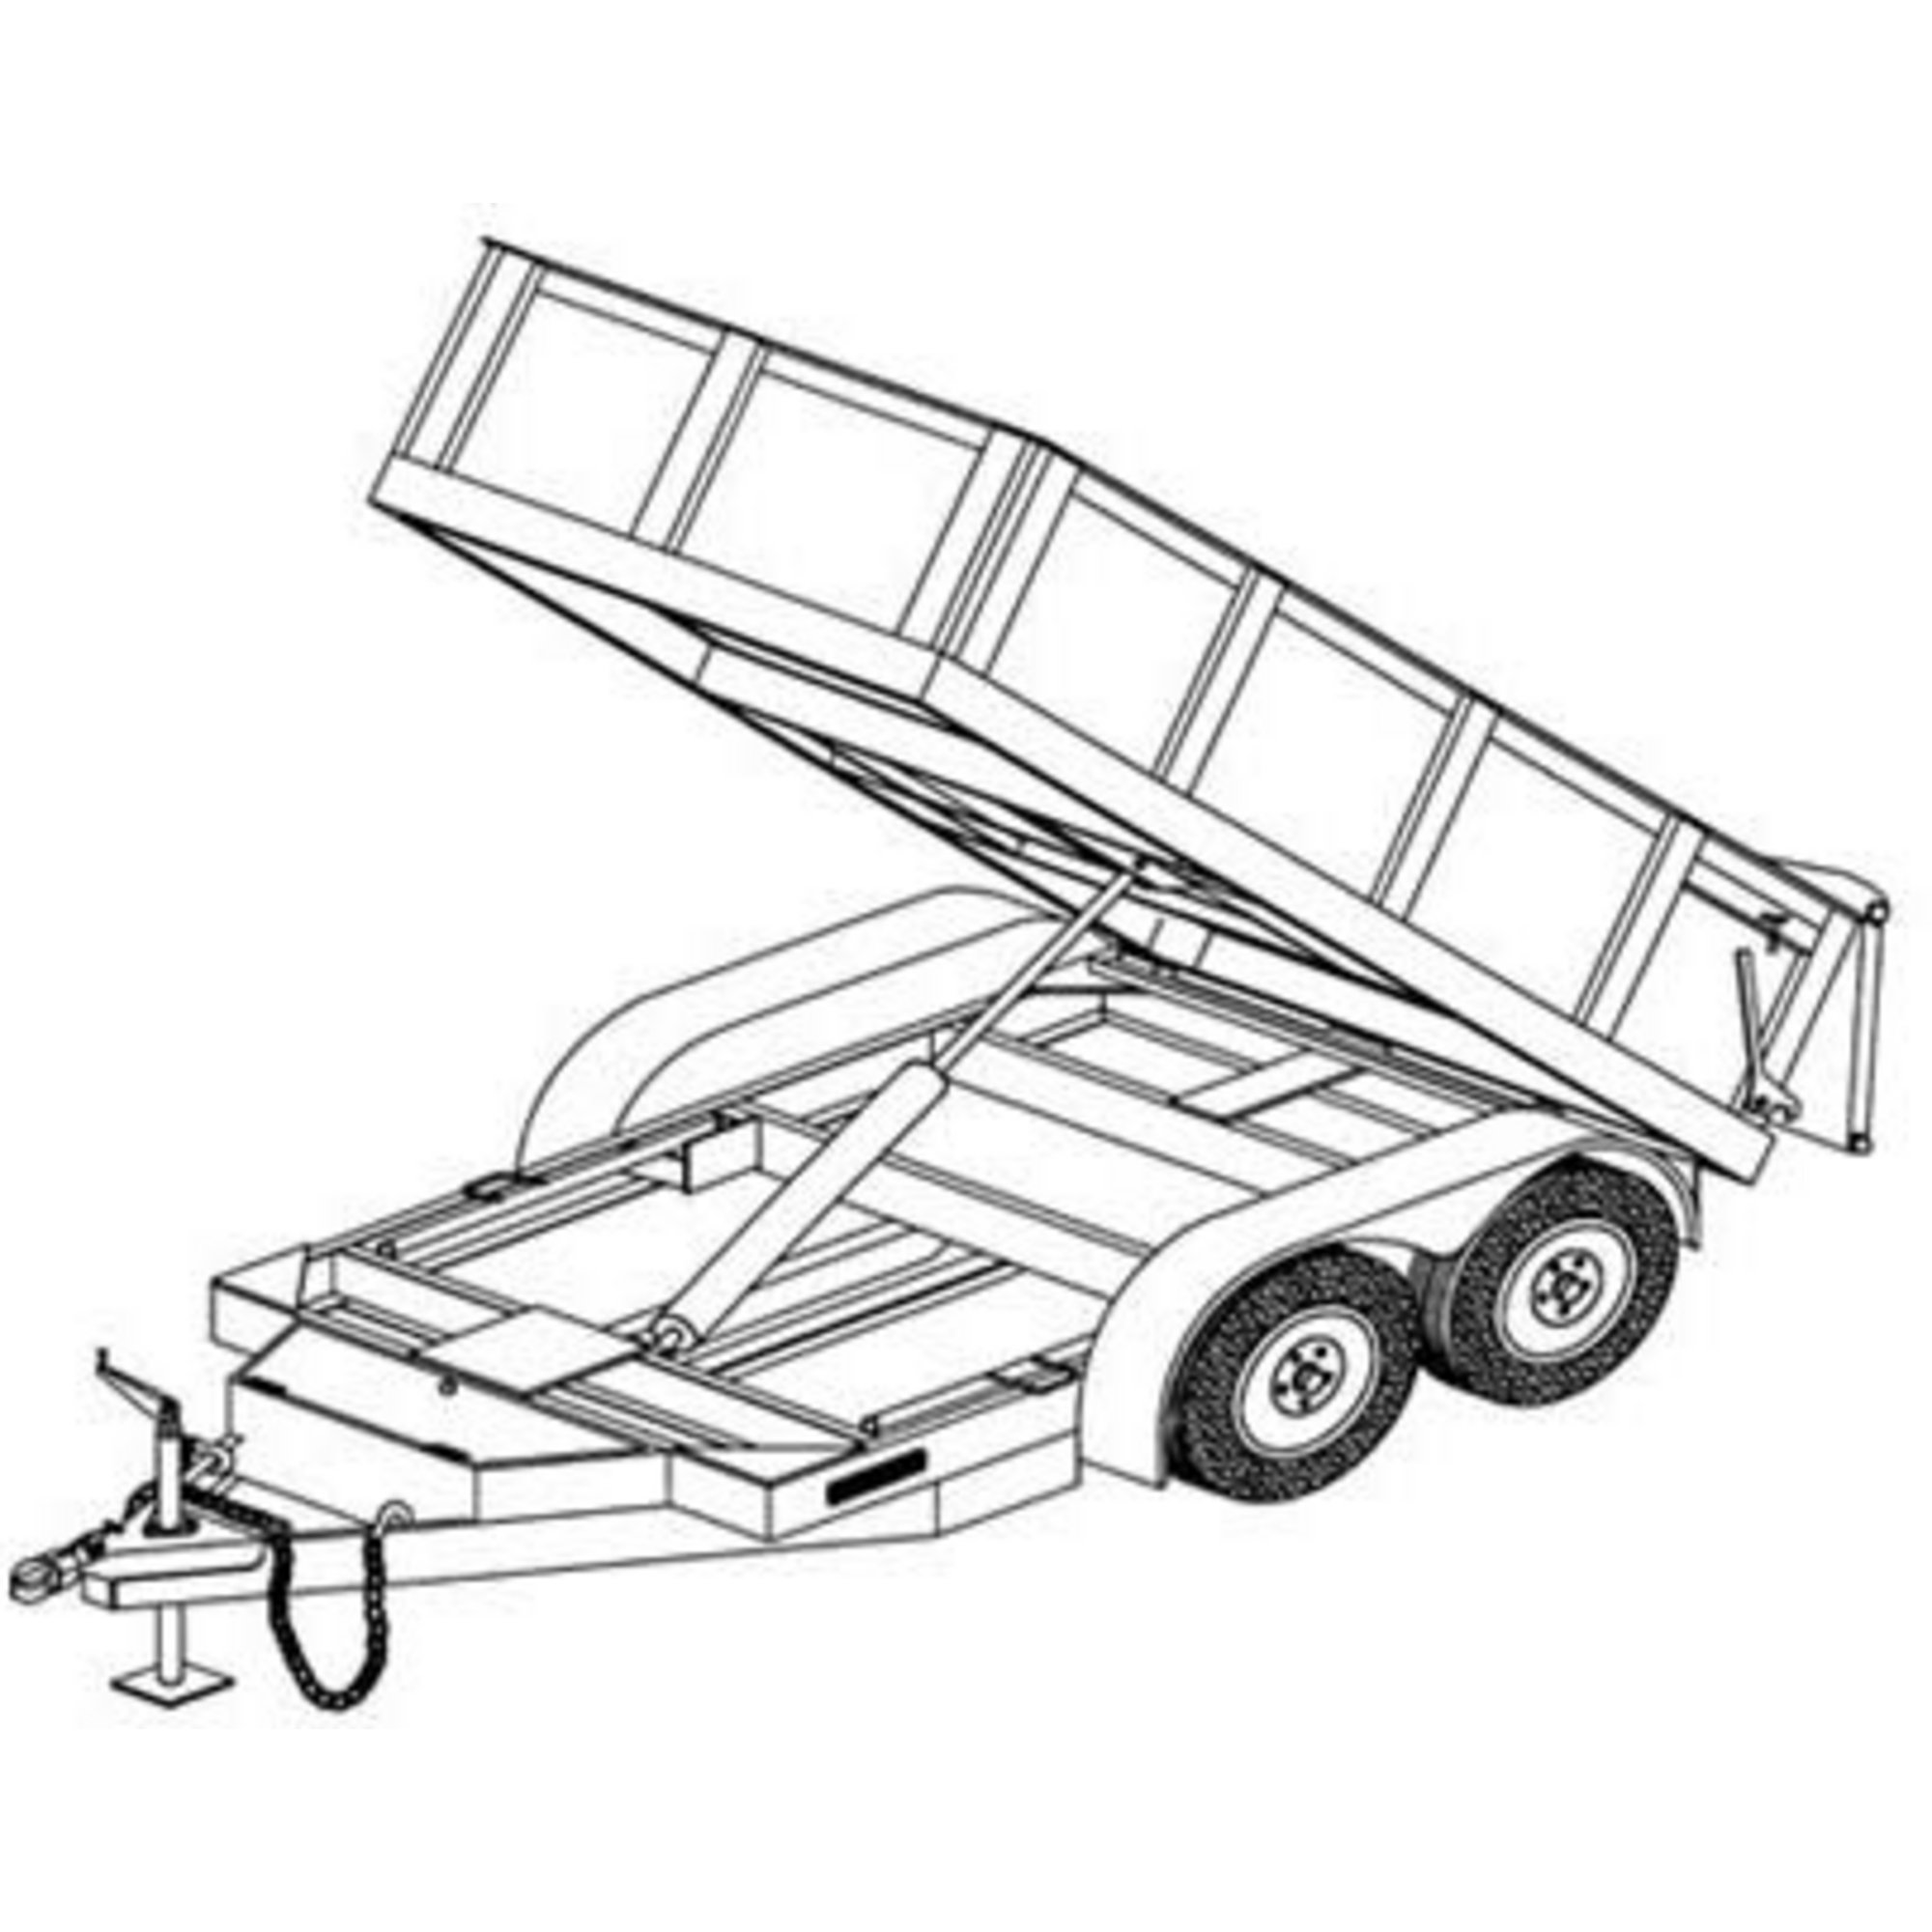 2000x2000 Utility Trailer Clipart